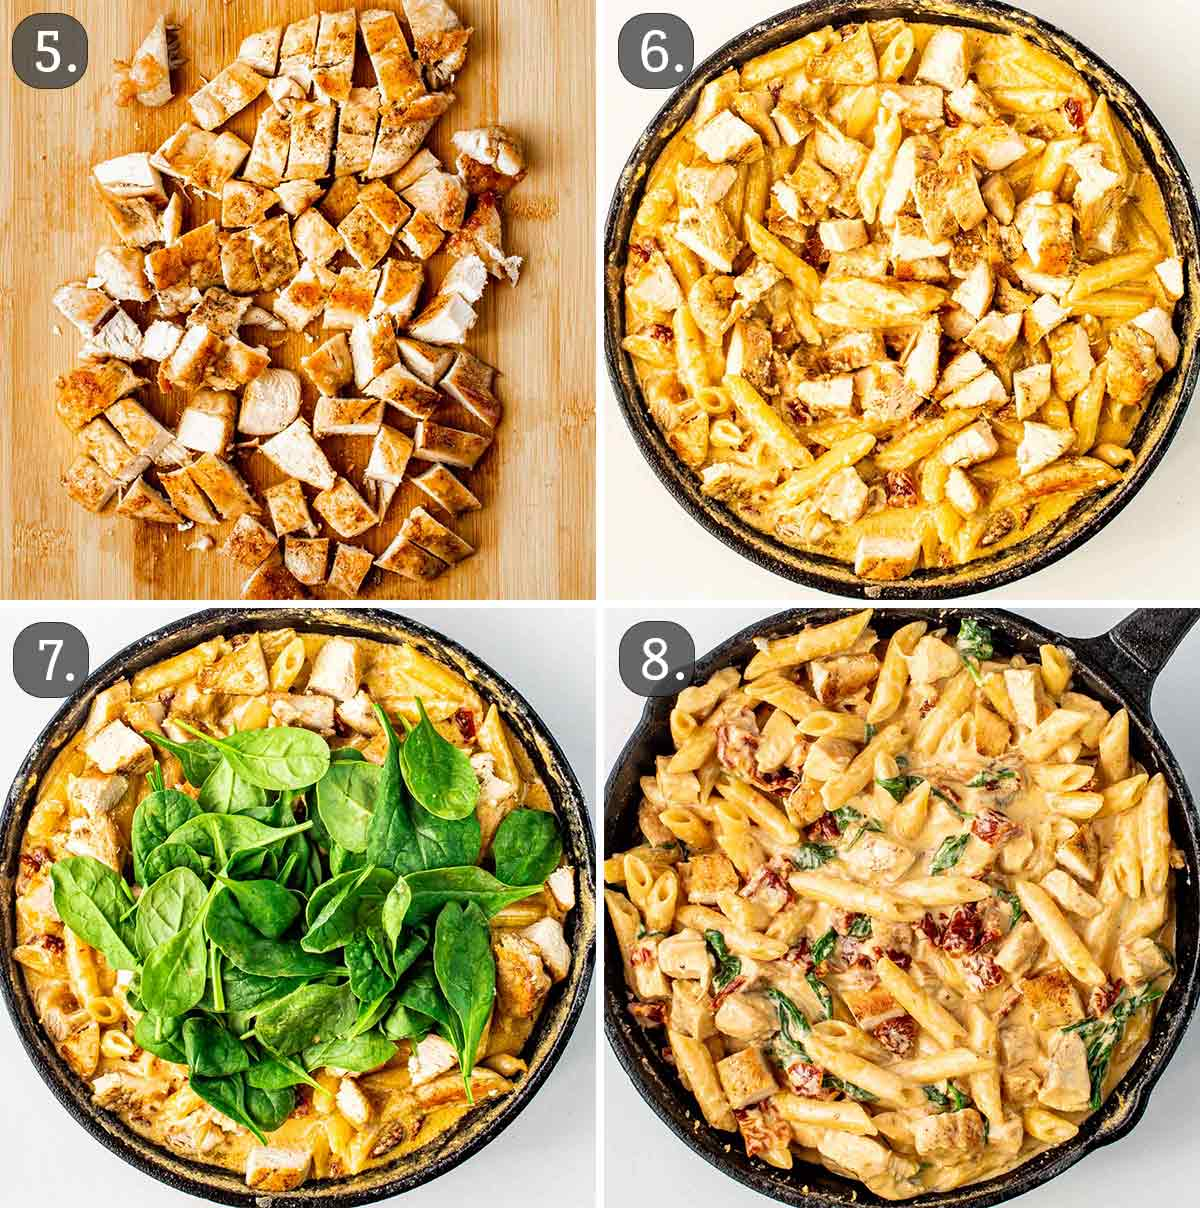 detailed process shots showing how to finish making creamy tuscan chicken pasta.